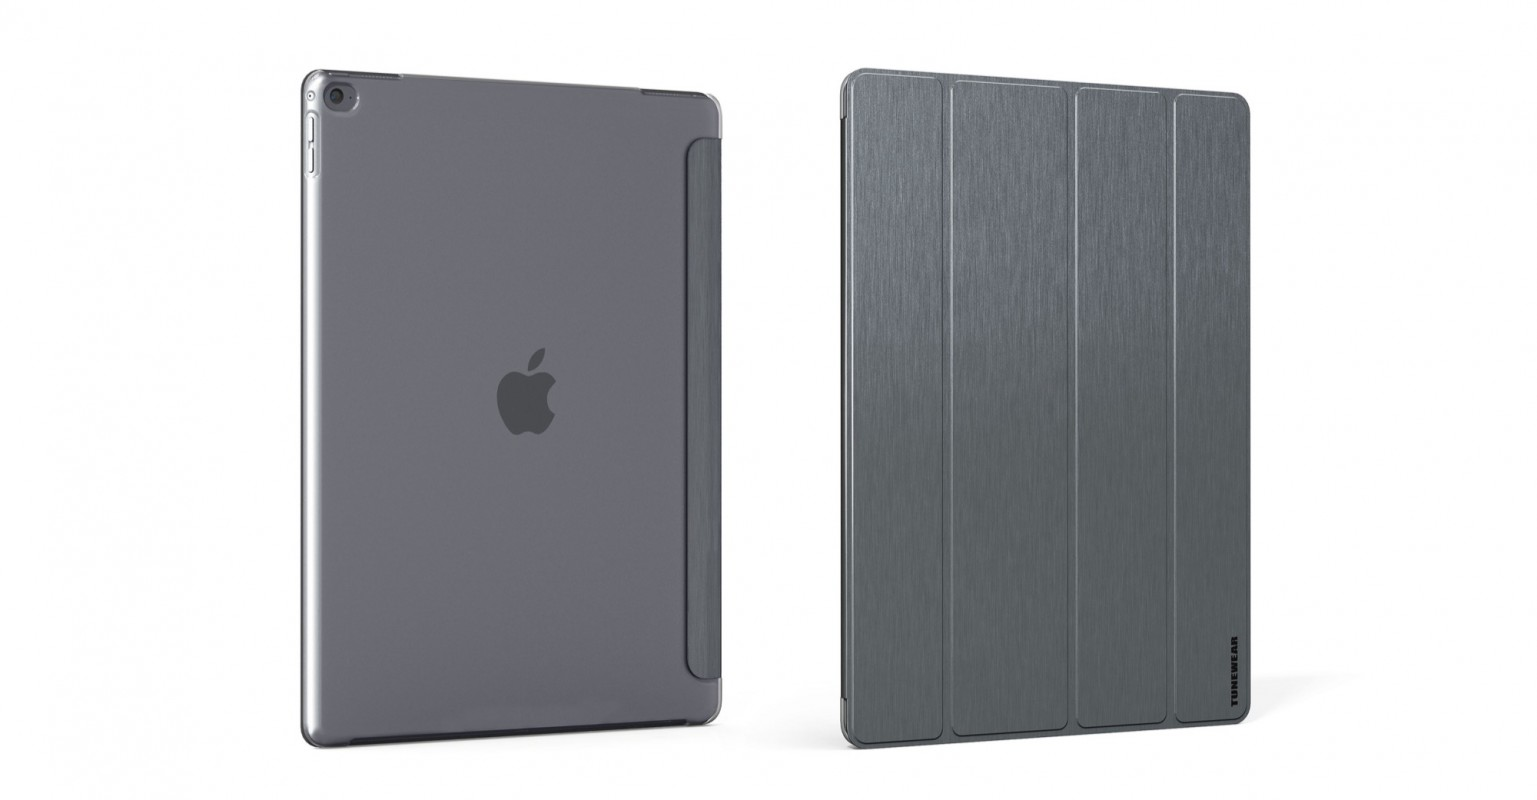 Brushed Metal Look SHELL with Front cover for iPad Pro (12.9inch)